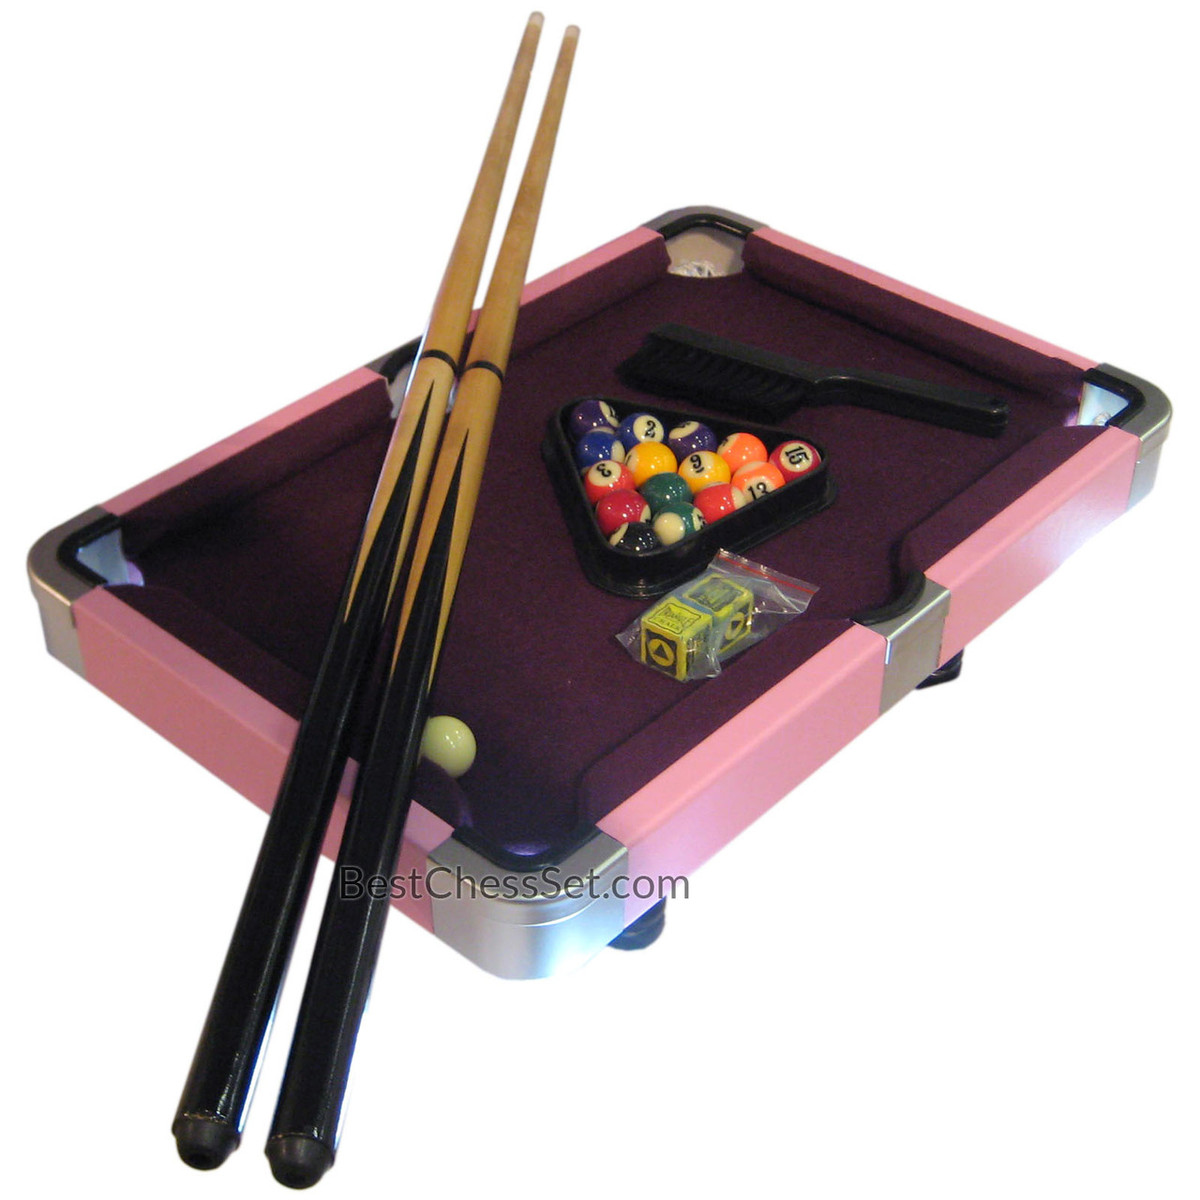 laura mini purple and pink pool table game with leatherette case 19 inch. Black Bedroom Furniture Sets. Home Design Ideas